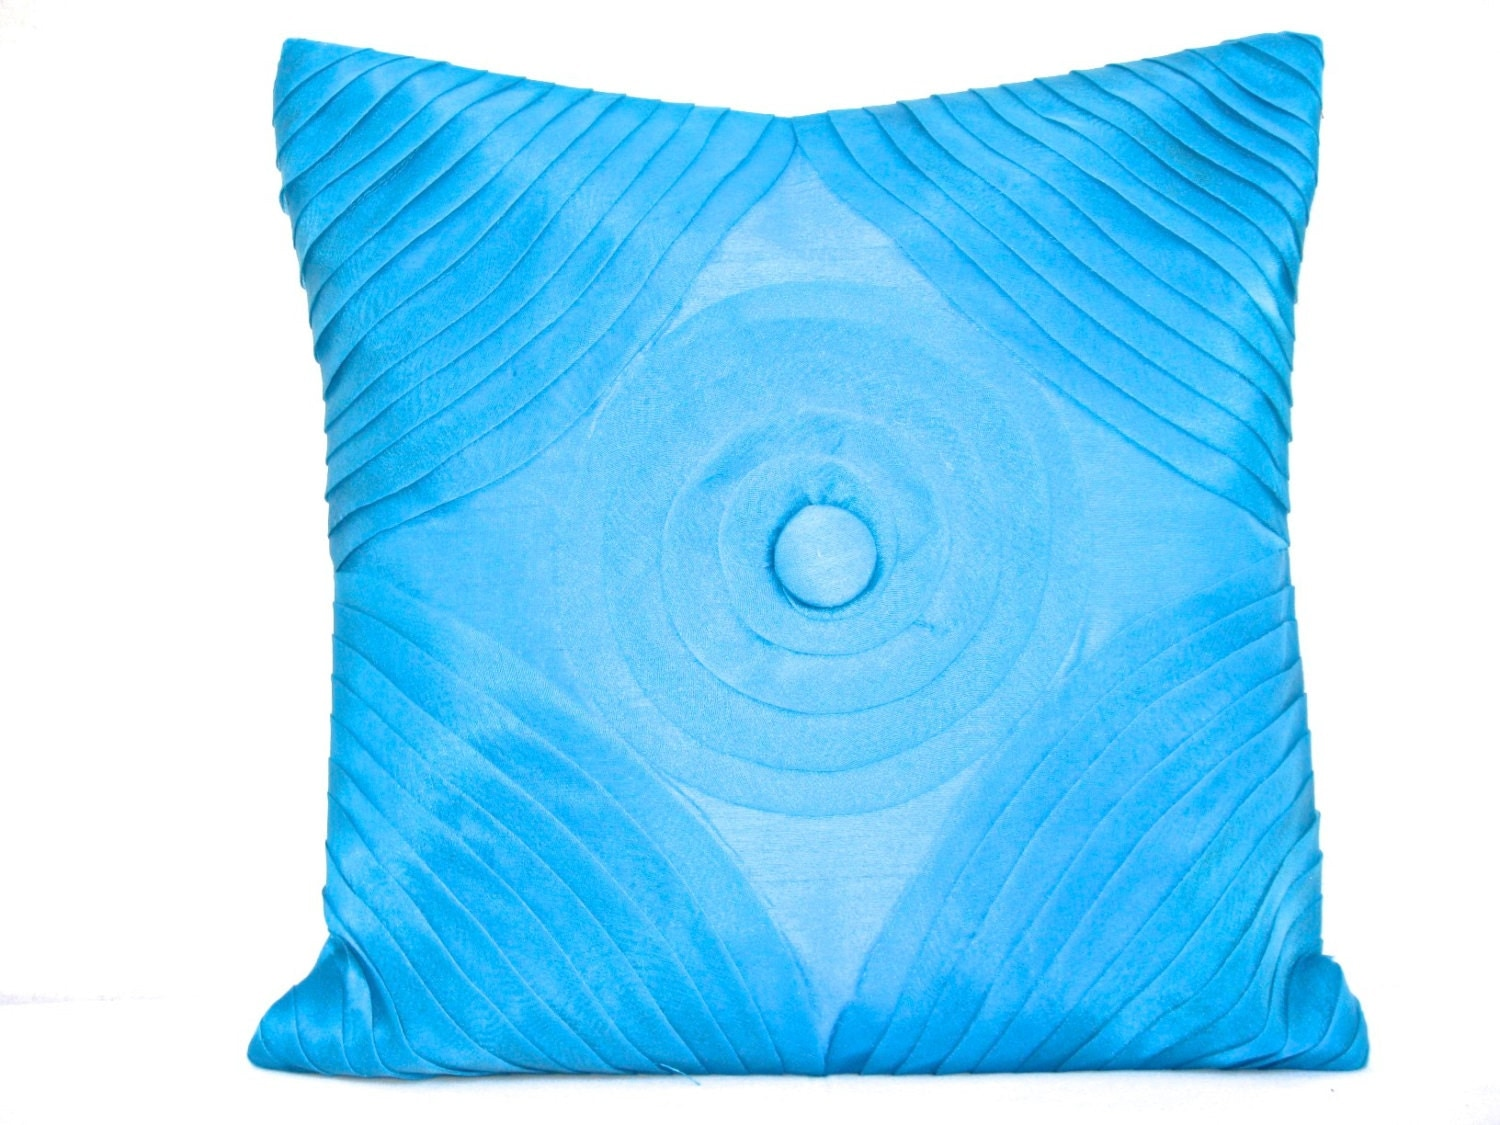 Turquoise Pillow Blue Throw Pillow Blue Pillow Cover Blue